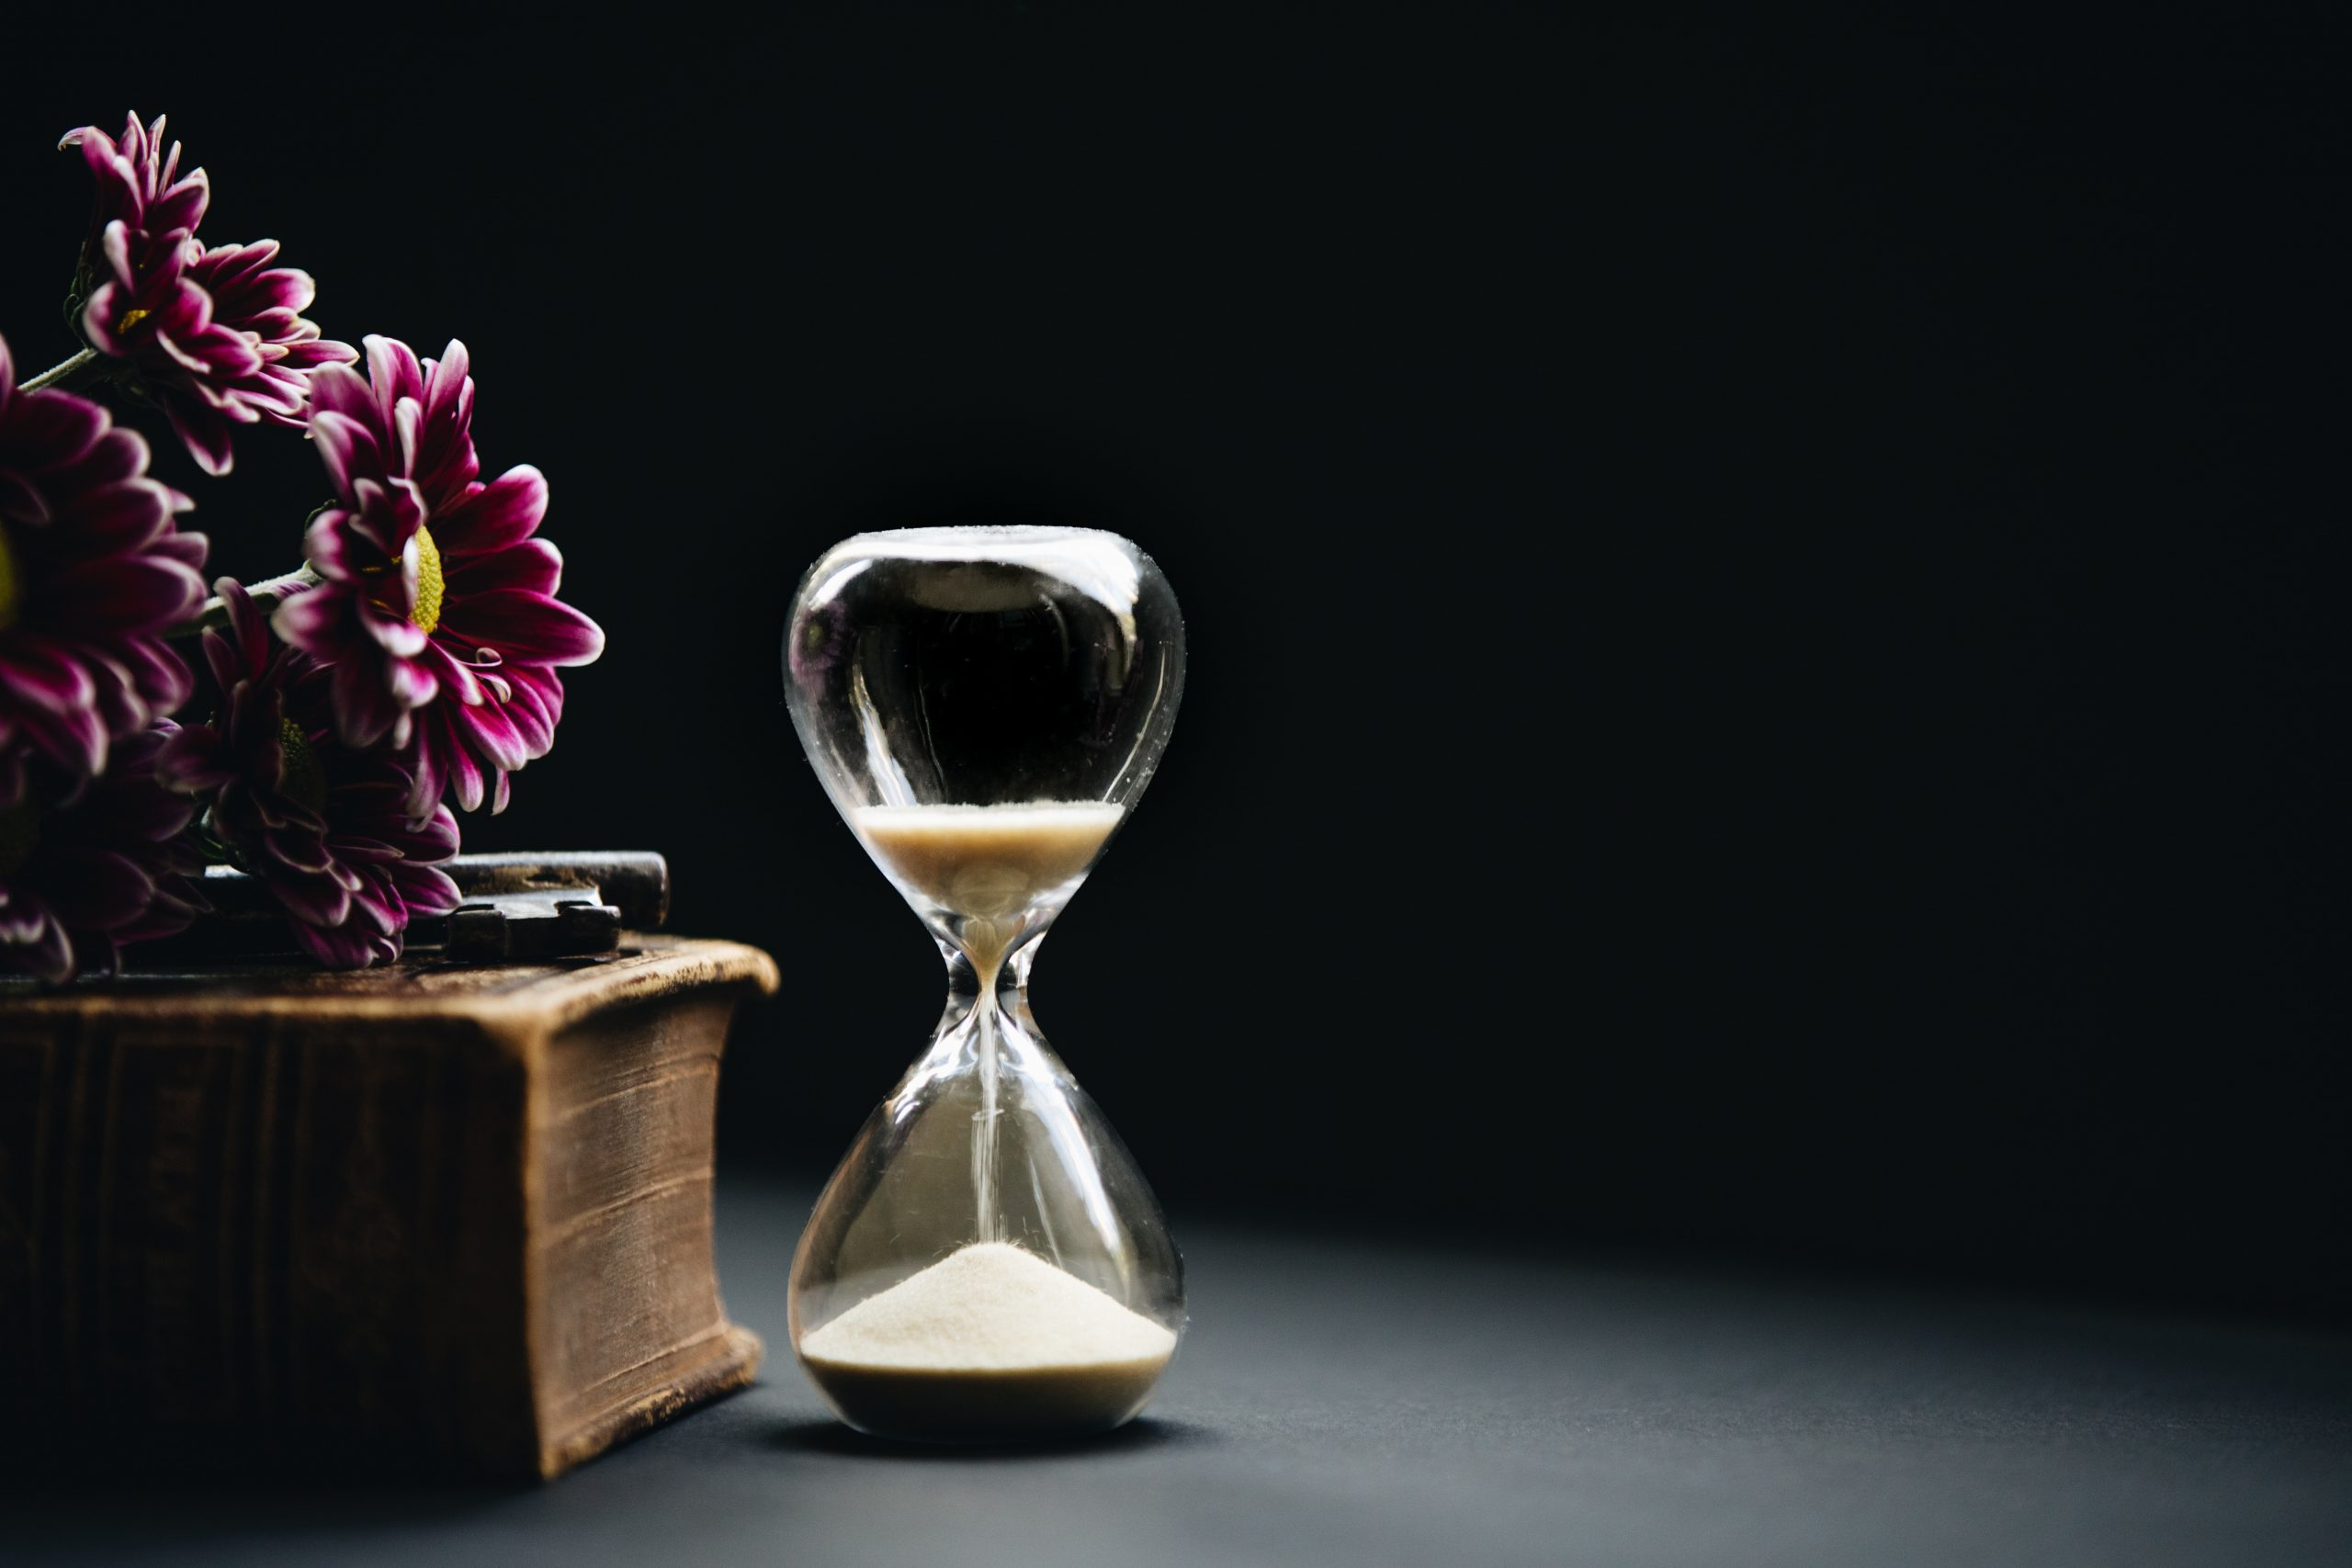 clear hour glass beside pink flowers